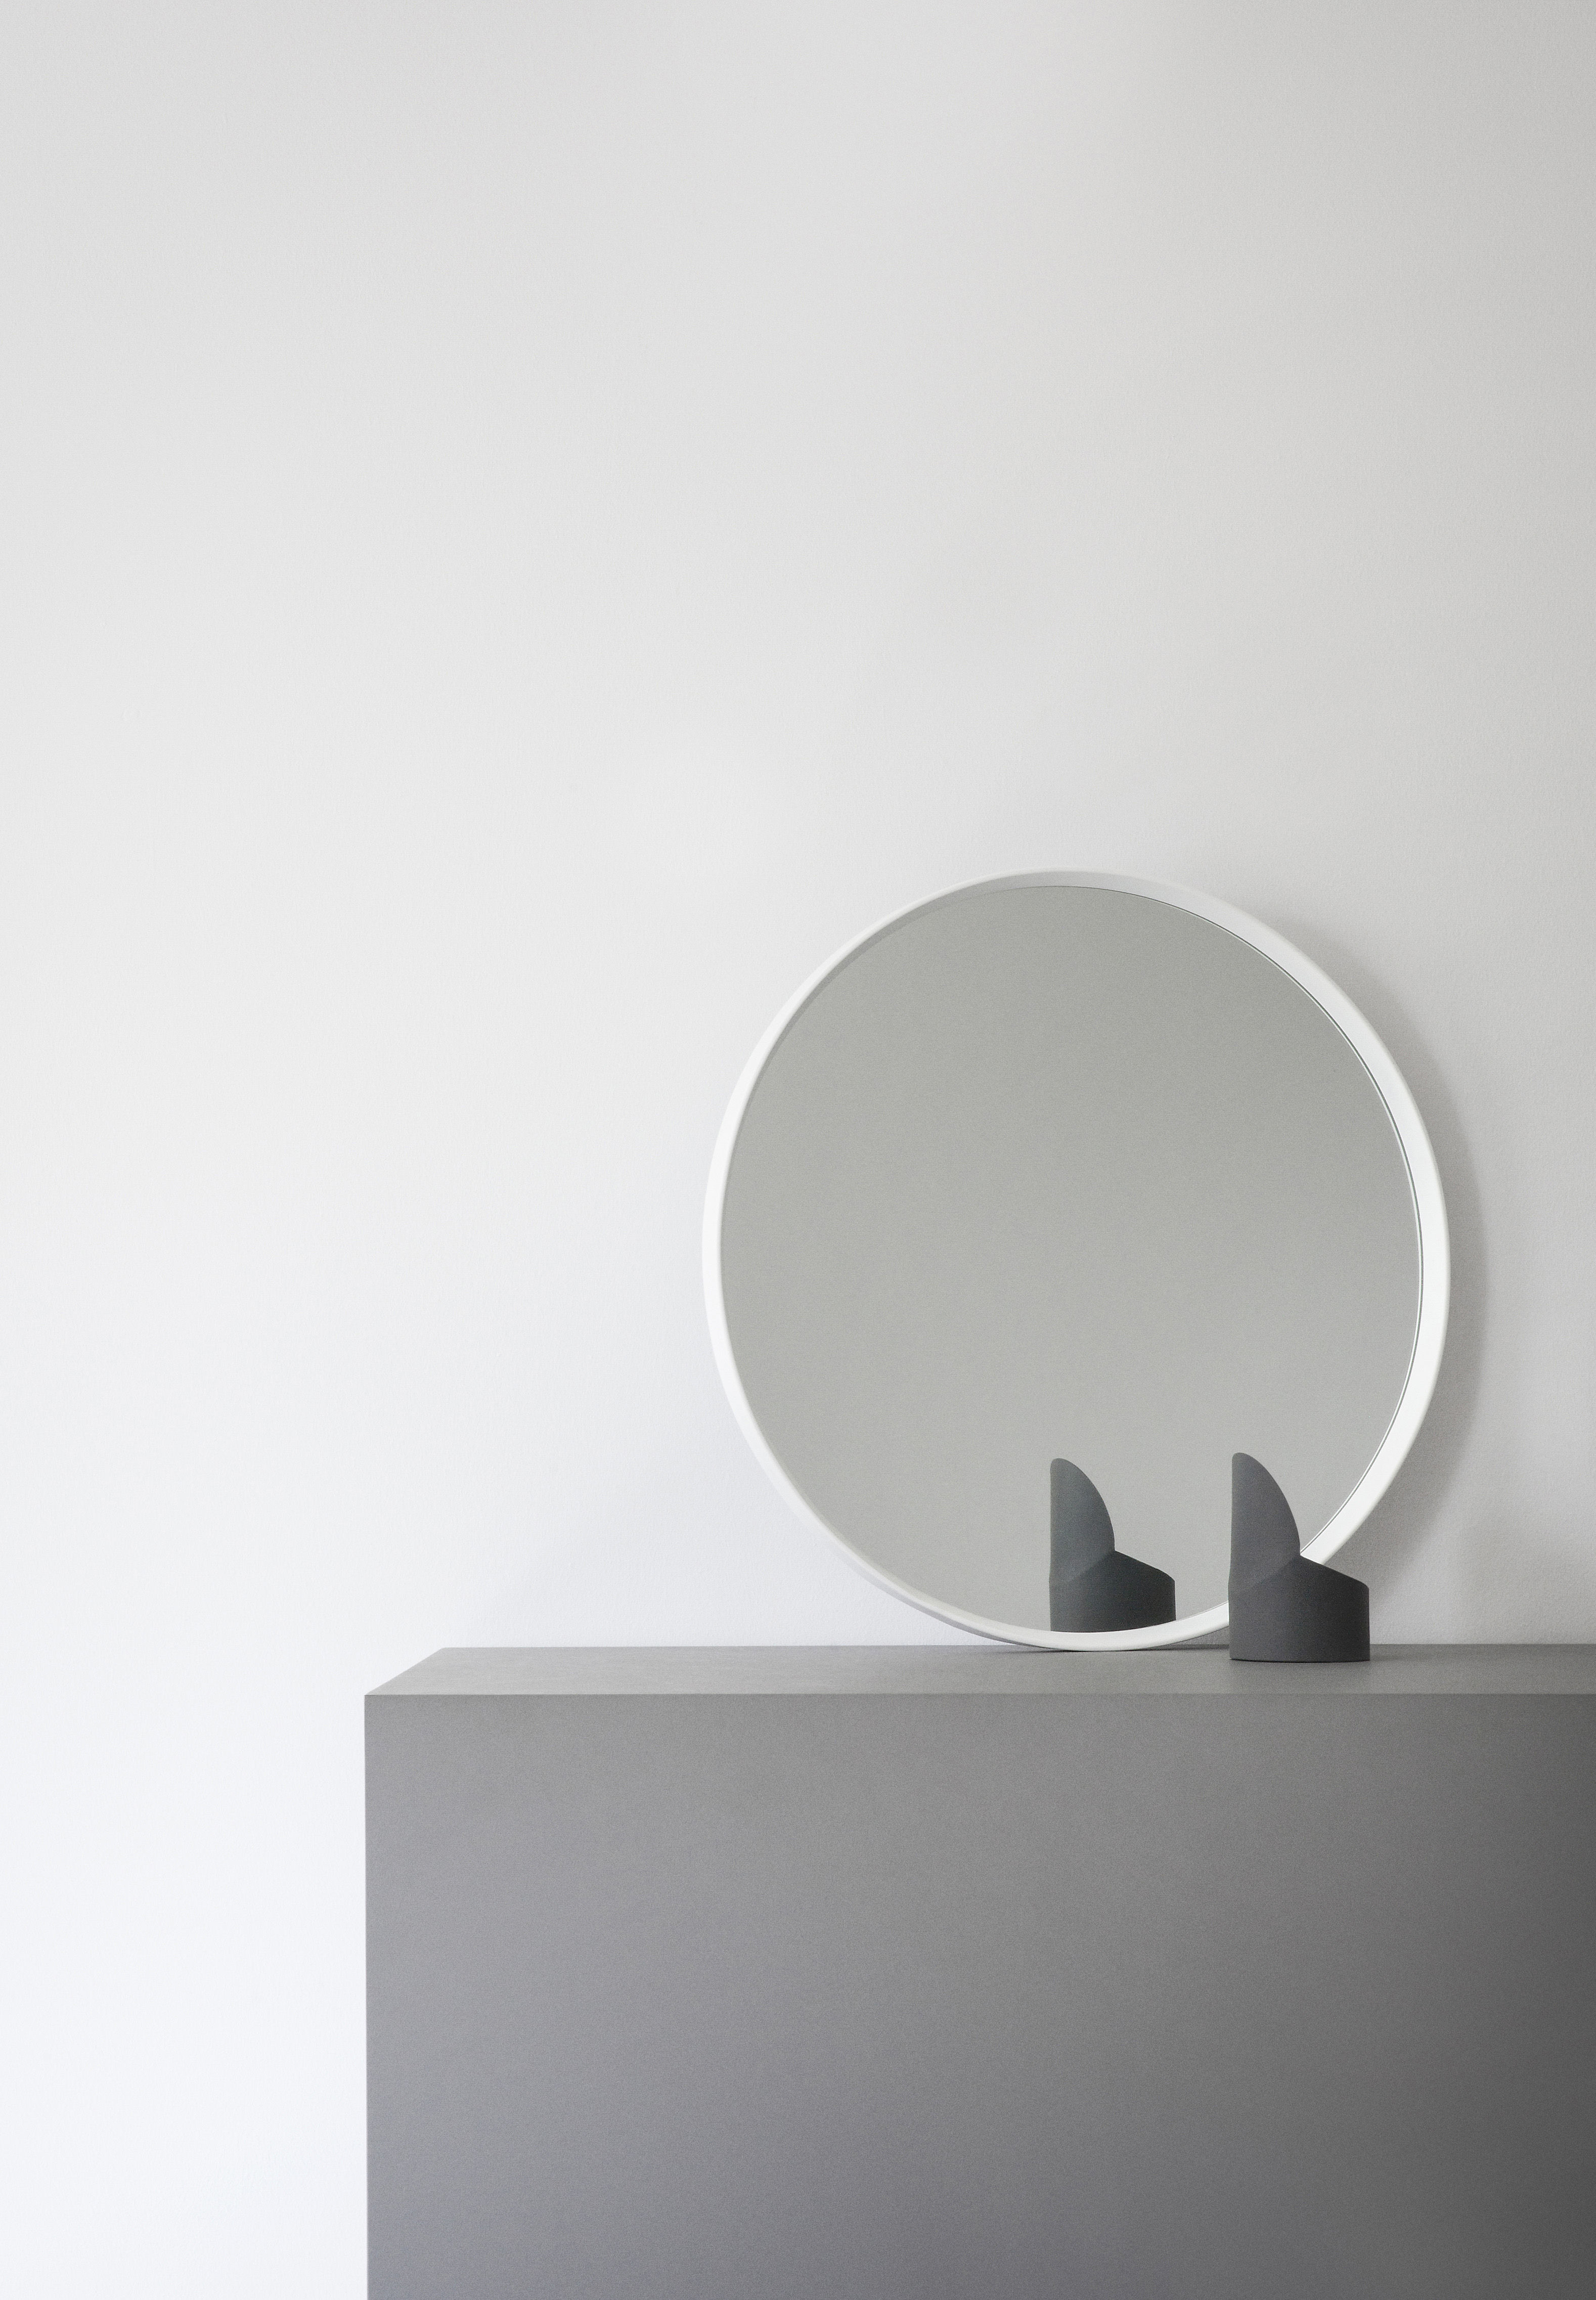 Norm wall mirror 60 cm white by menu for Mirror 45 x 60